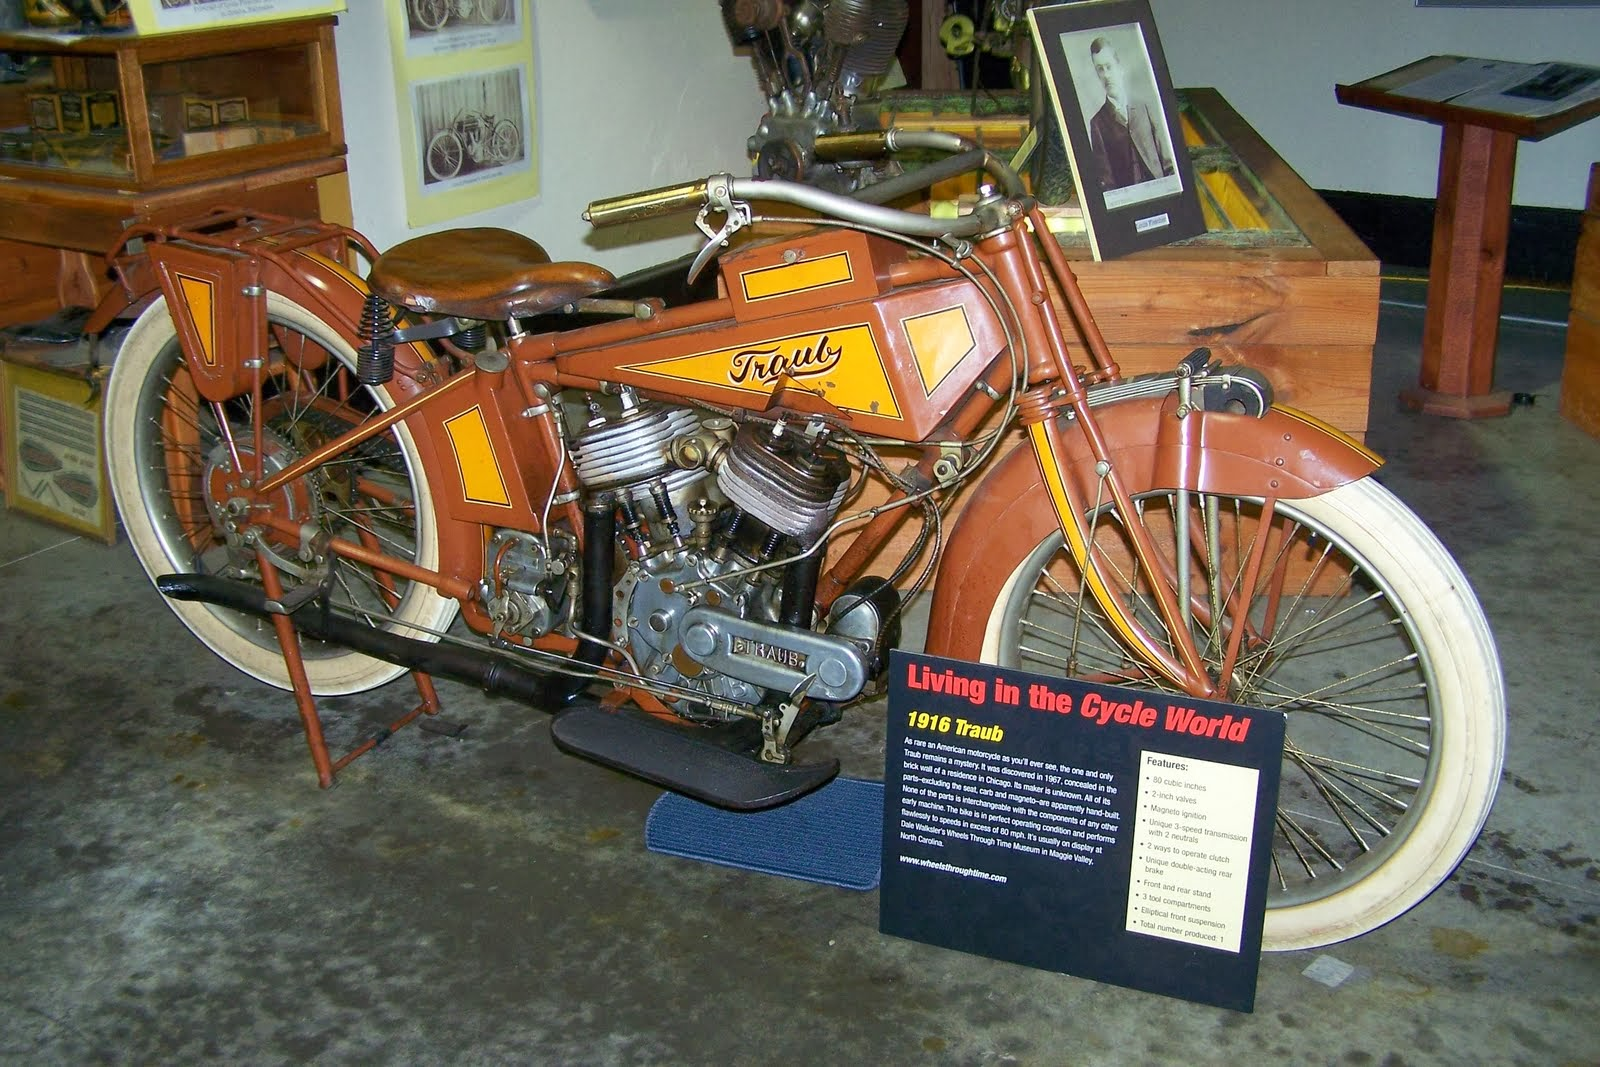 The Rarest Motorcycle In The World A Mystery That Has Yet